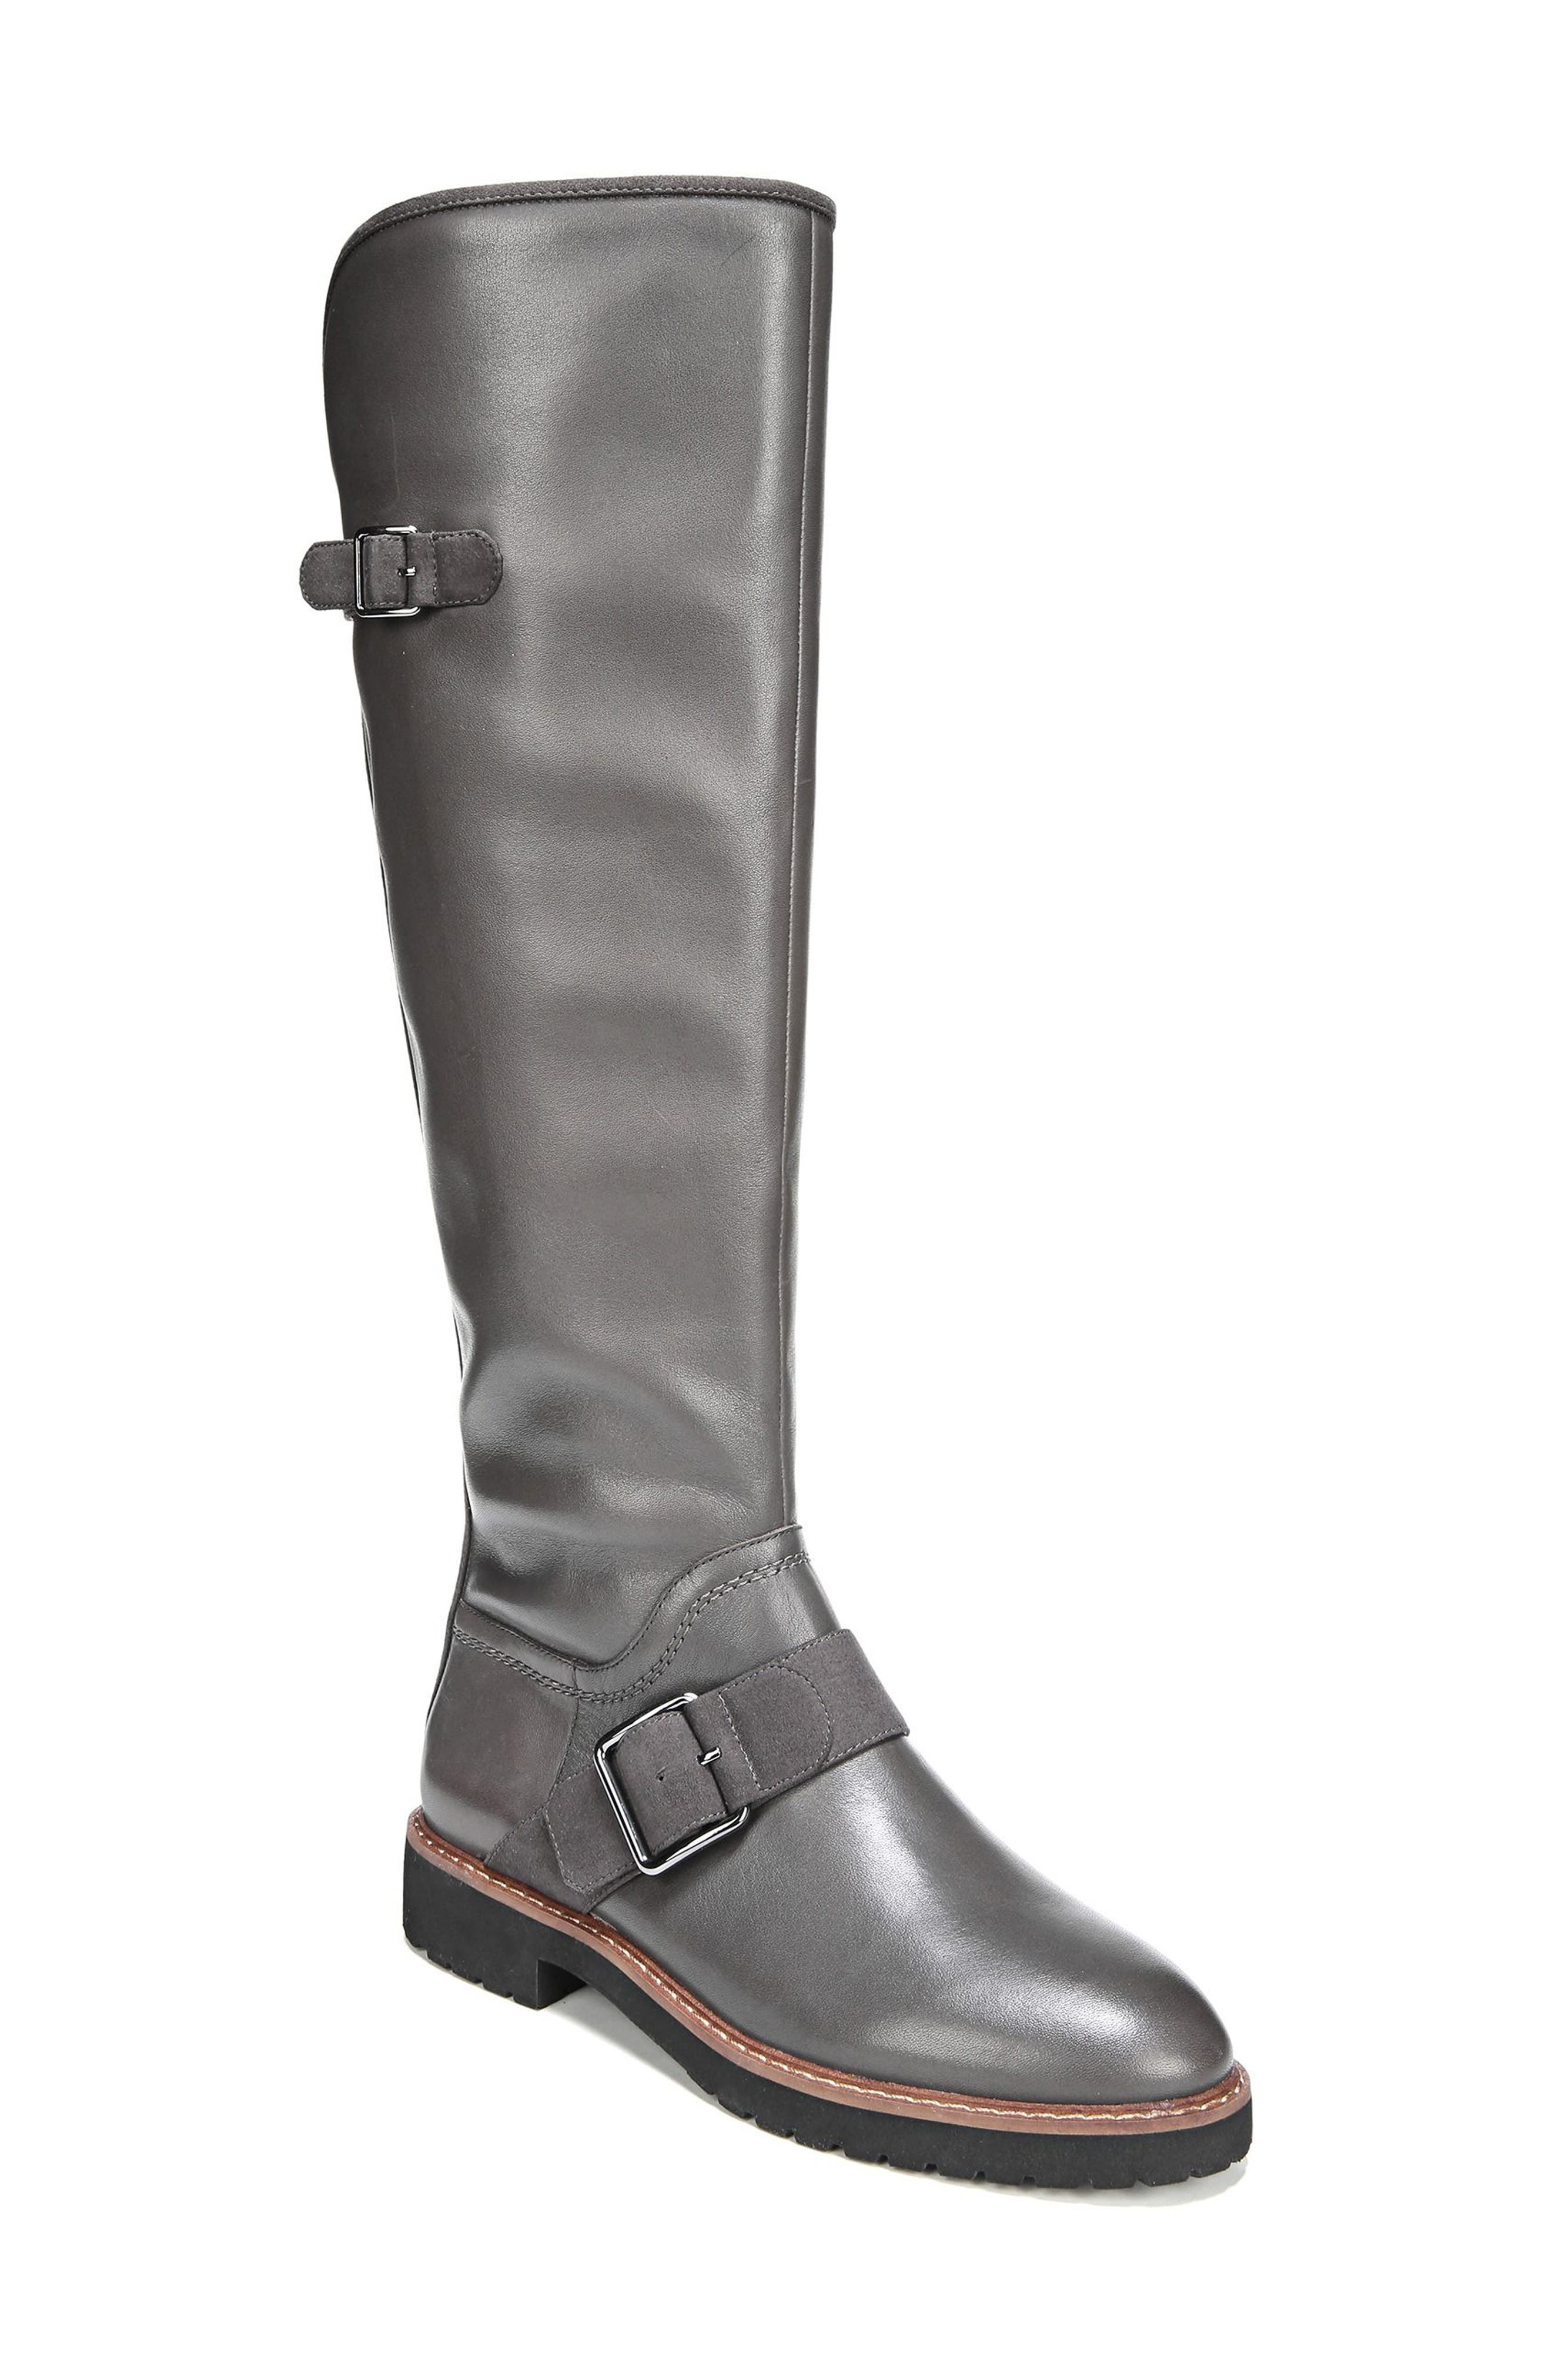 Cutler Riding Boot,                             Main thumbnail 1, color,                             Peat Leather